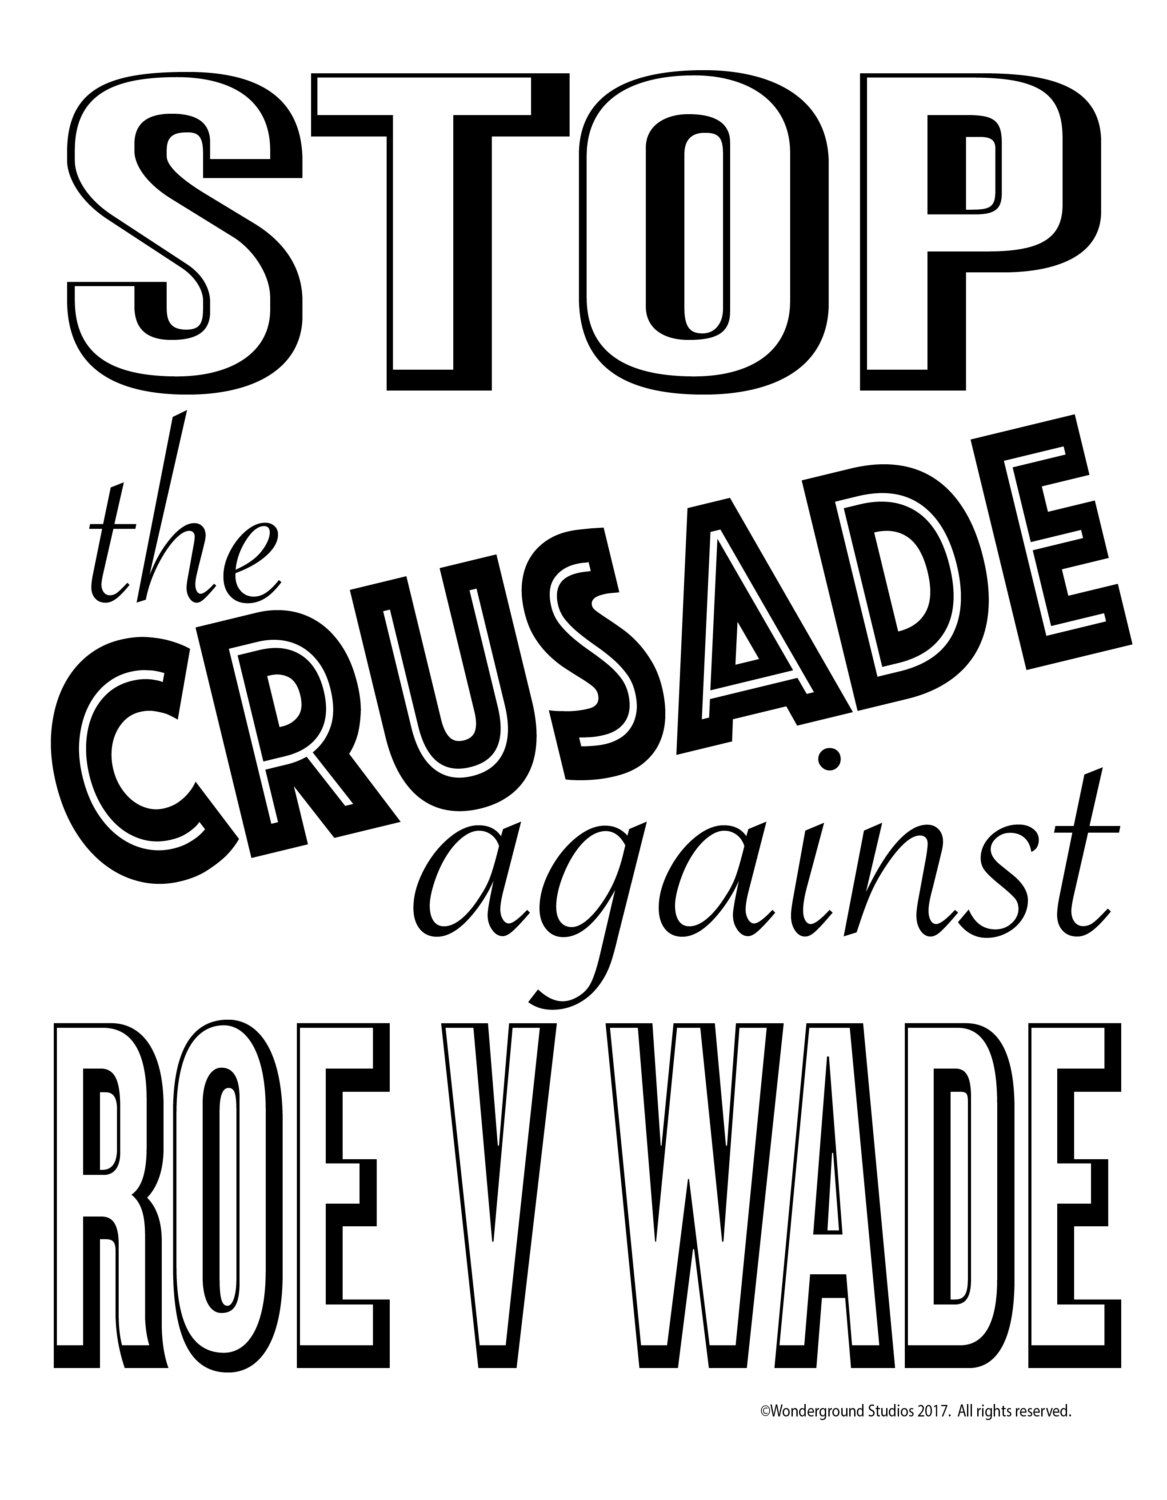 Stop The Crusade Against Roe V Wade Etsy Protest Signs Crusades Lettering